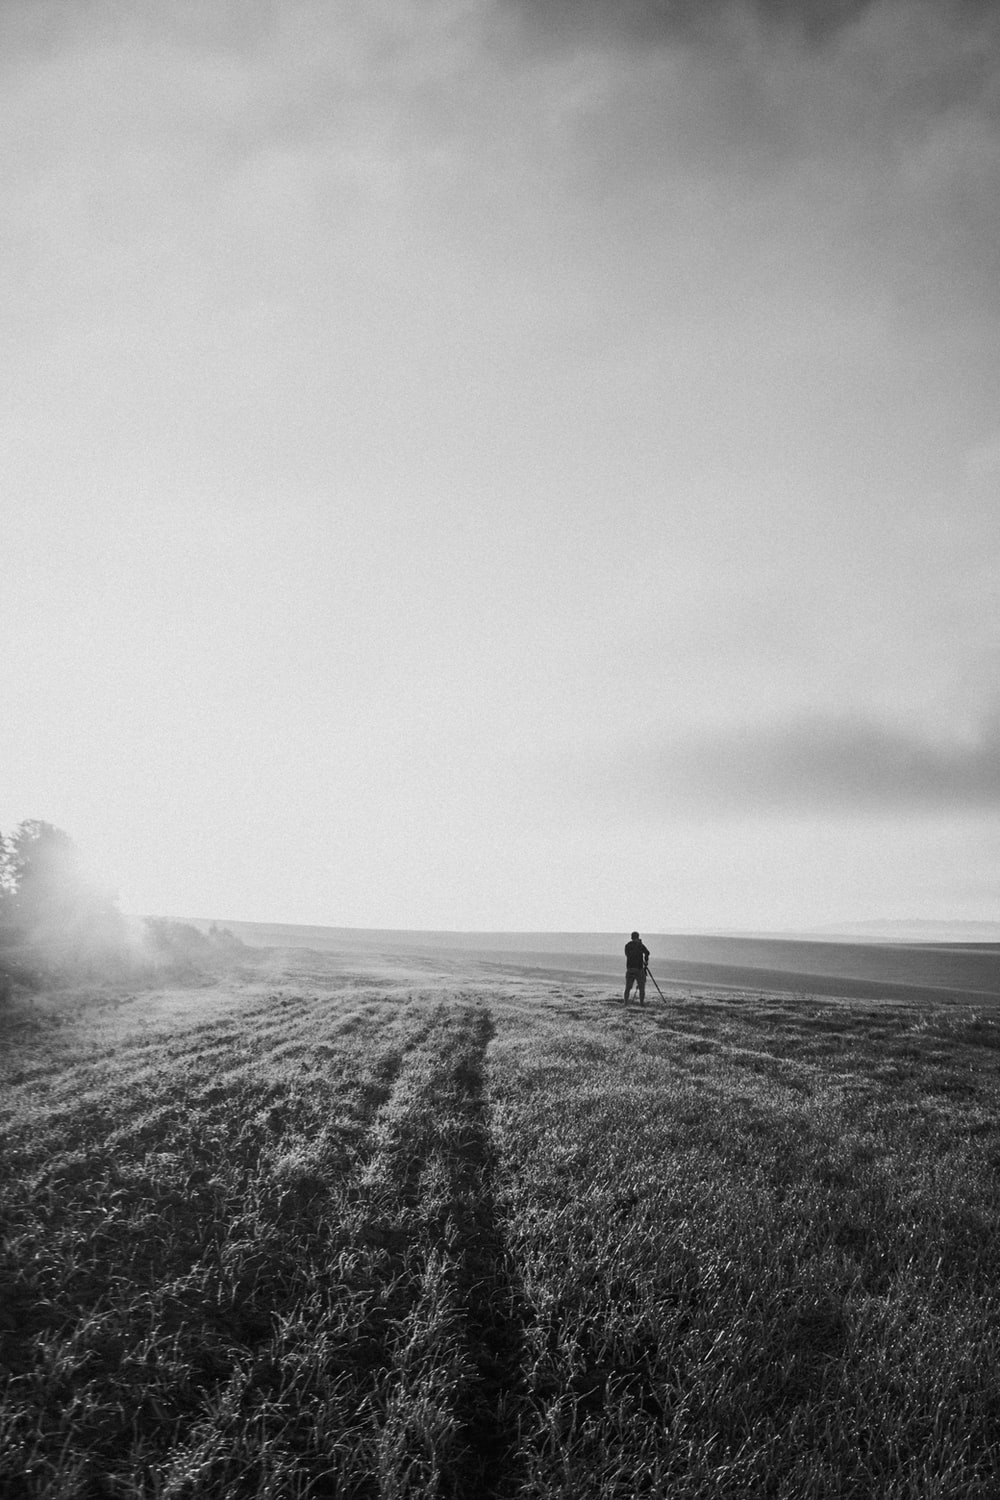 grayscale photo of 2 person walking on grass field